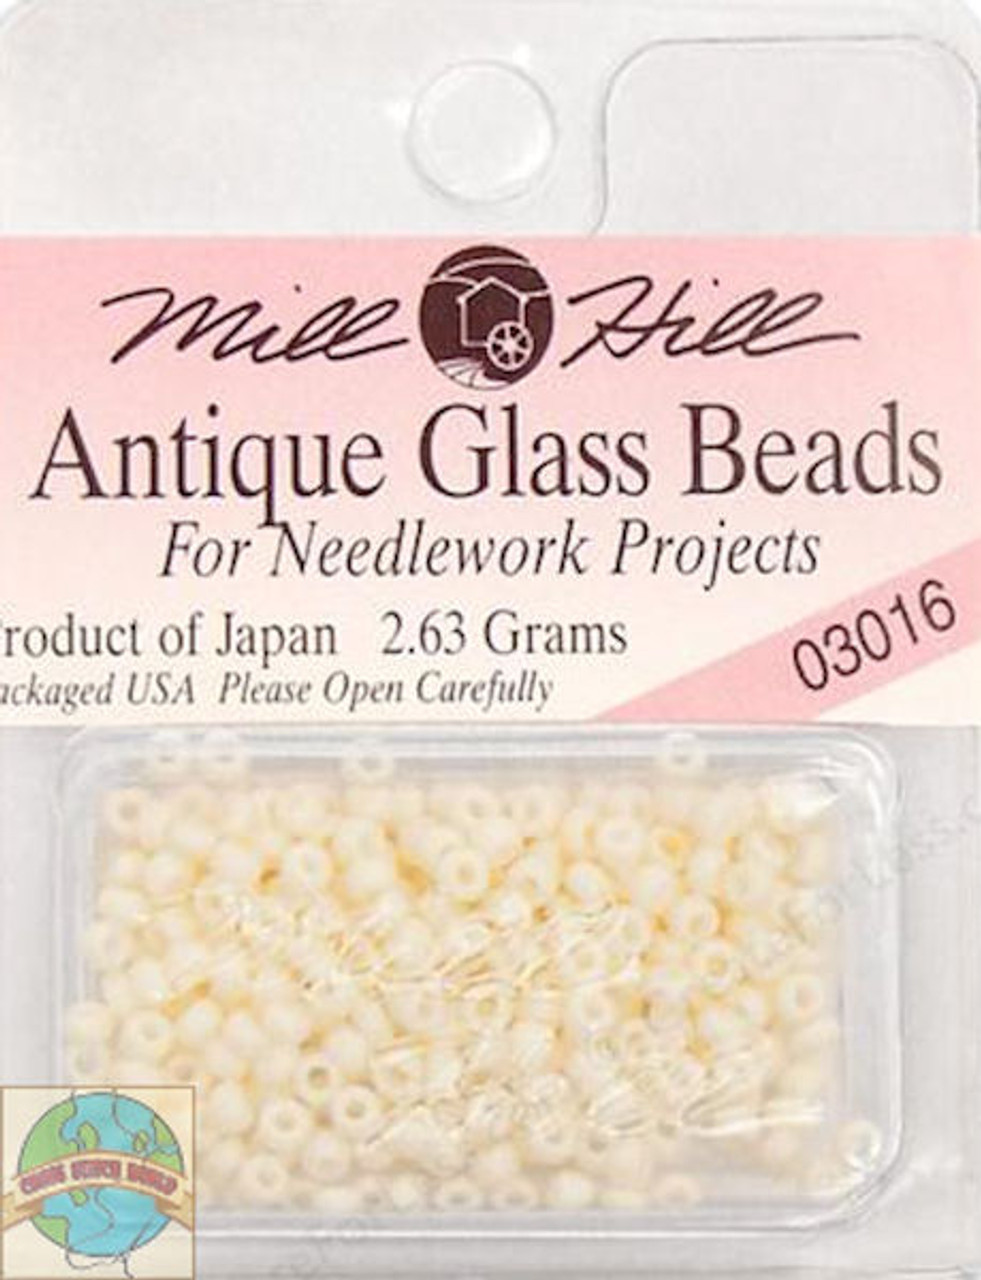 Mill Hill Antique Glass Beads 2.63g  Vanilla